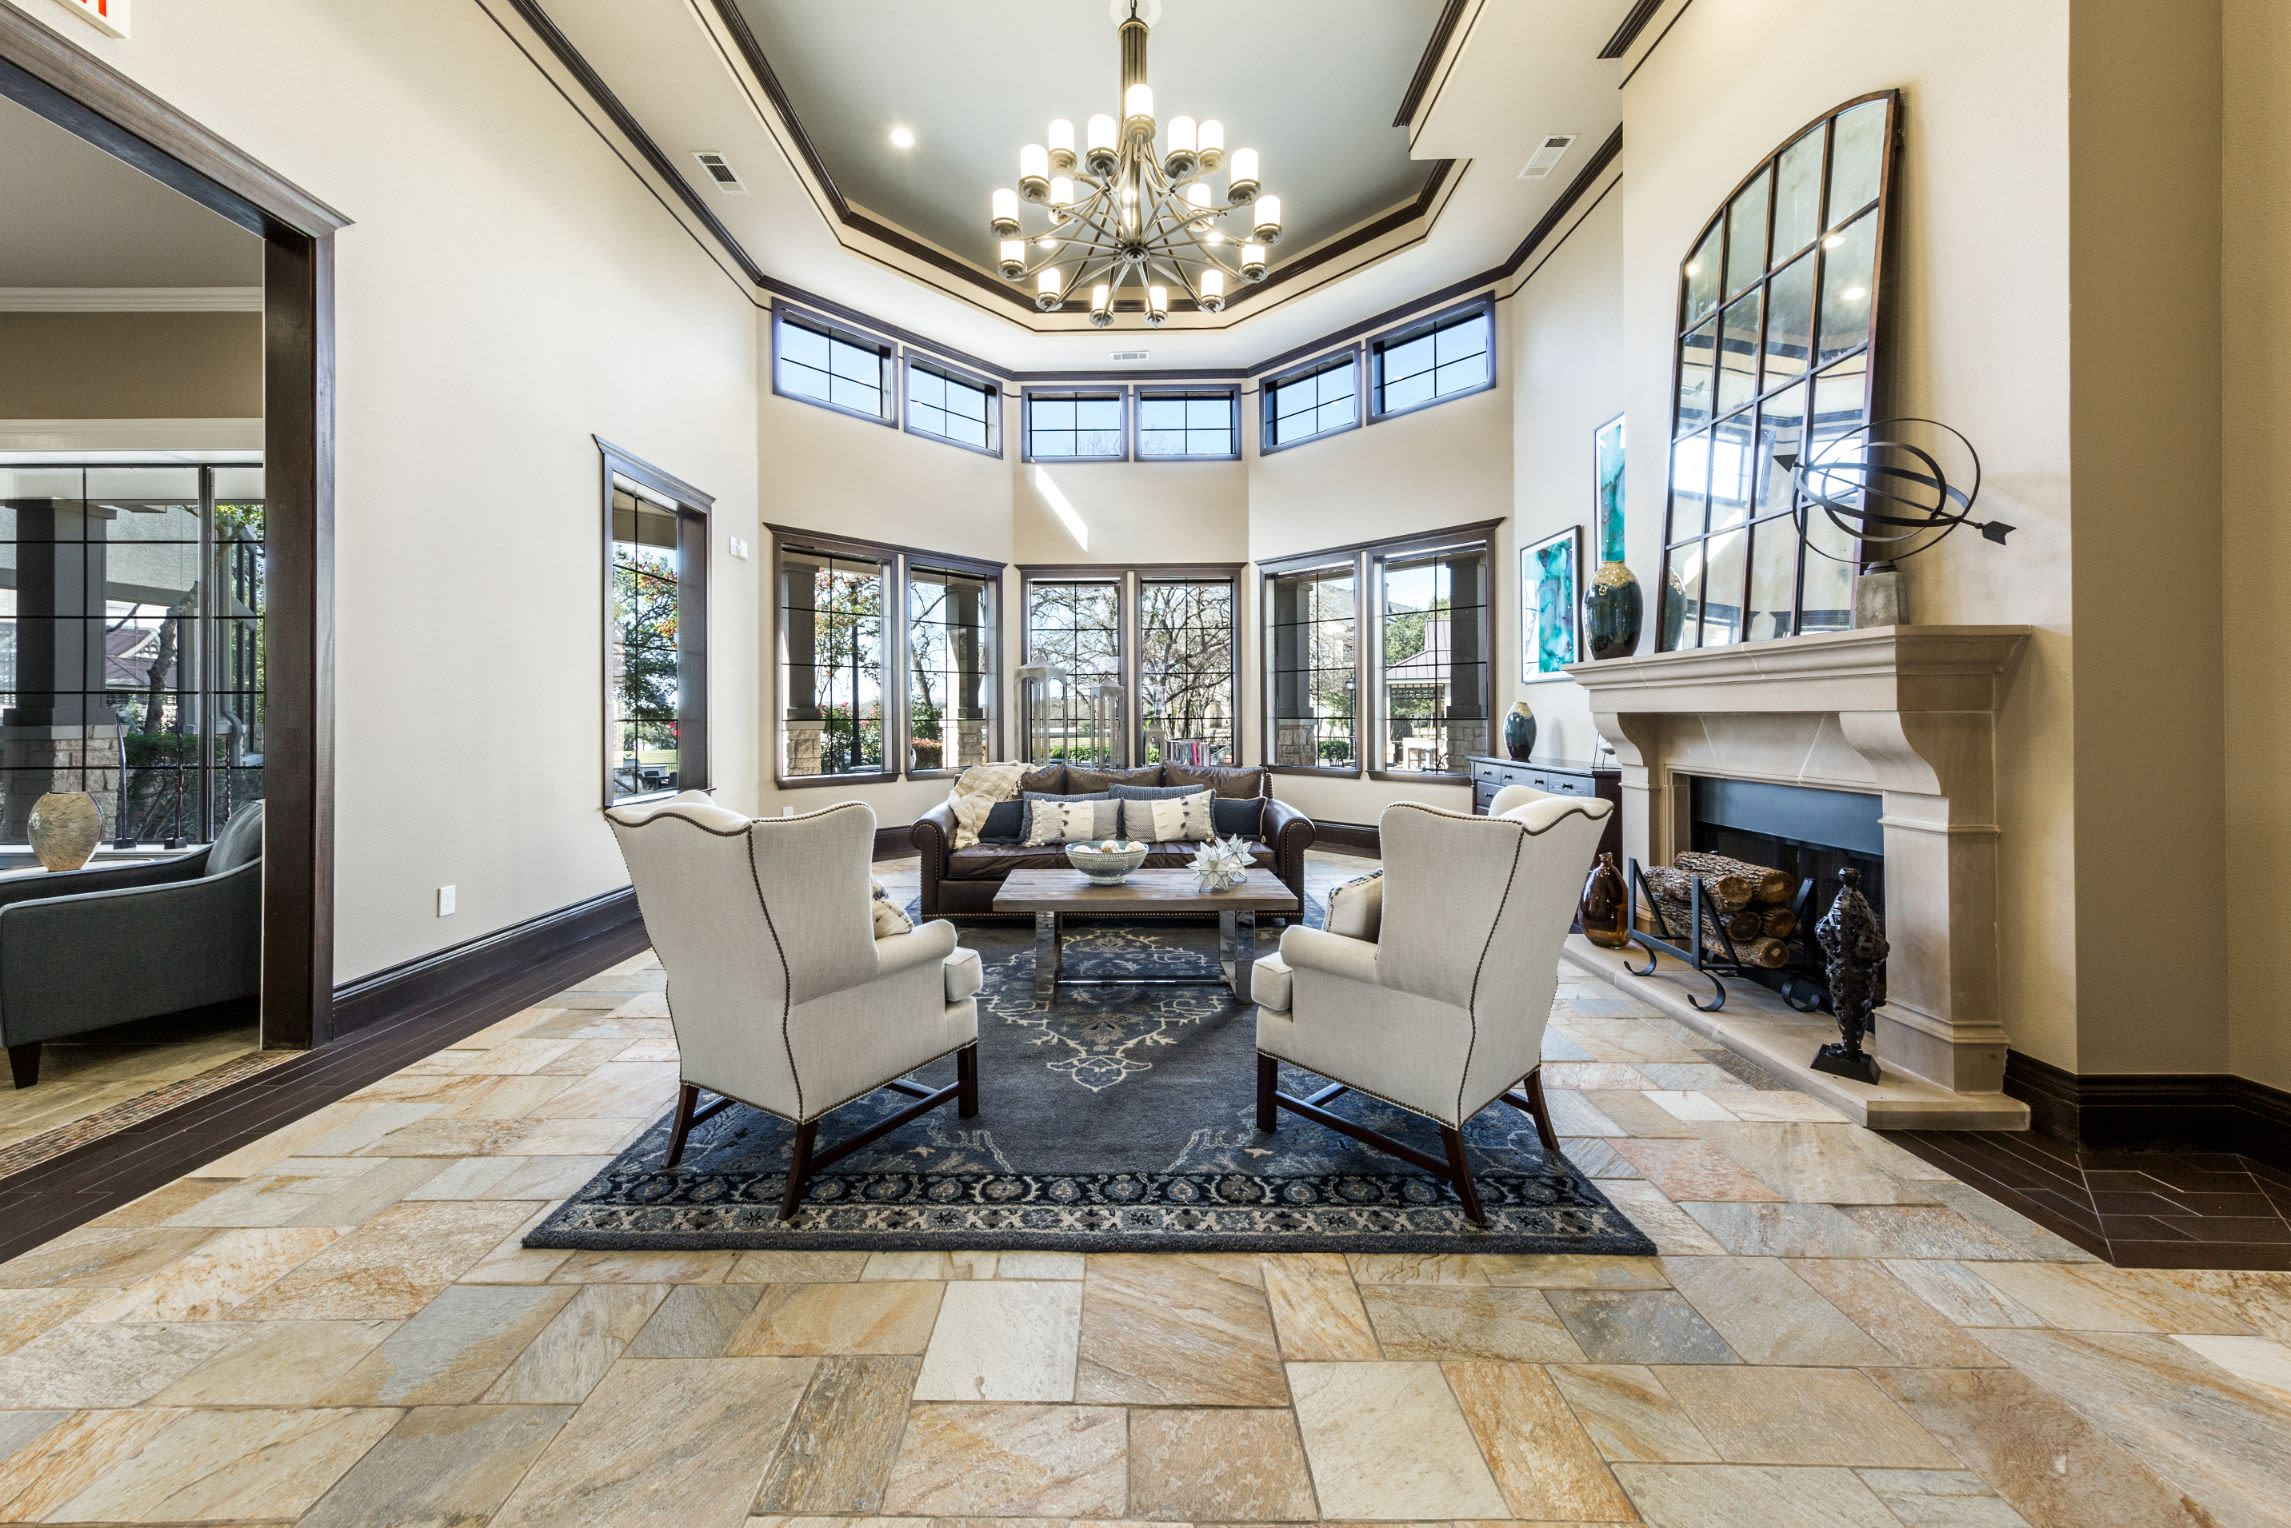 Elegant lobby area with a large rug and chandelier at The Marquis at Brushy Creek in Austin, Texas